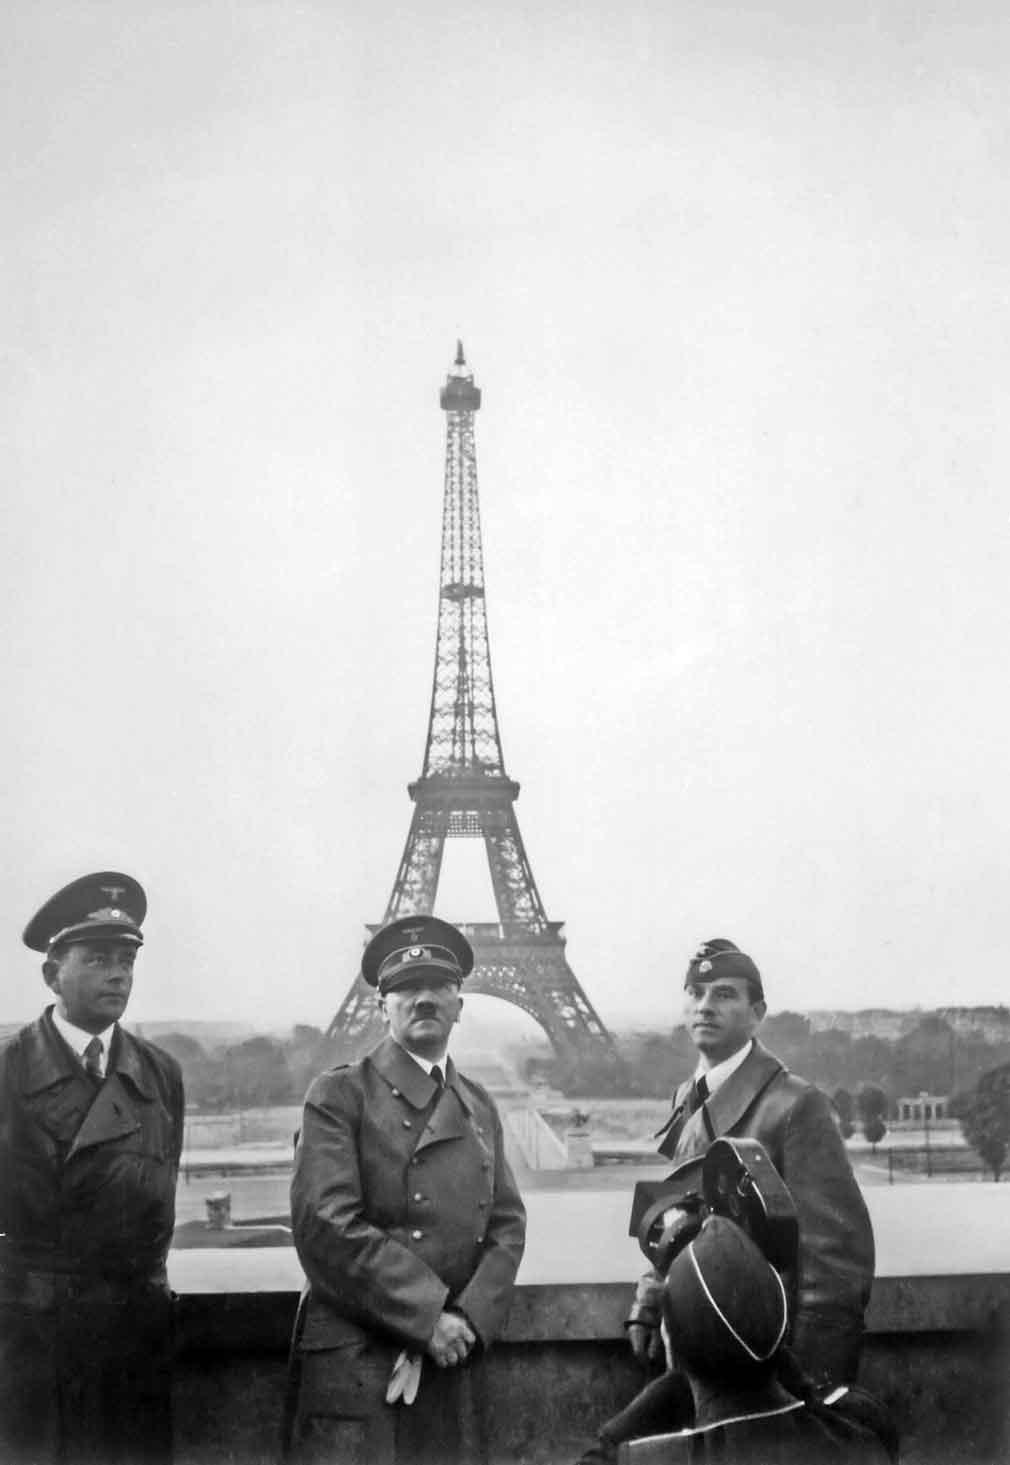 Adolf Hitler in front of the Eiffel Tower, Paris.